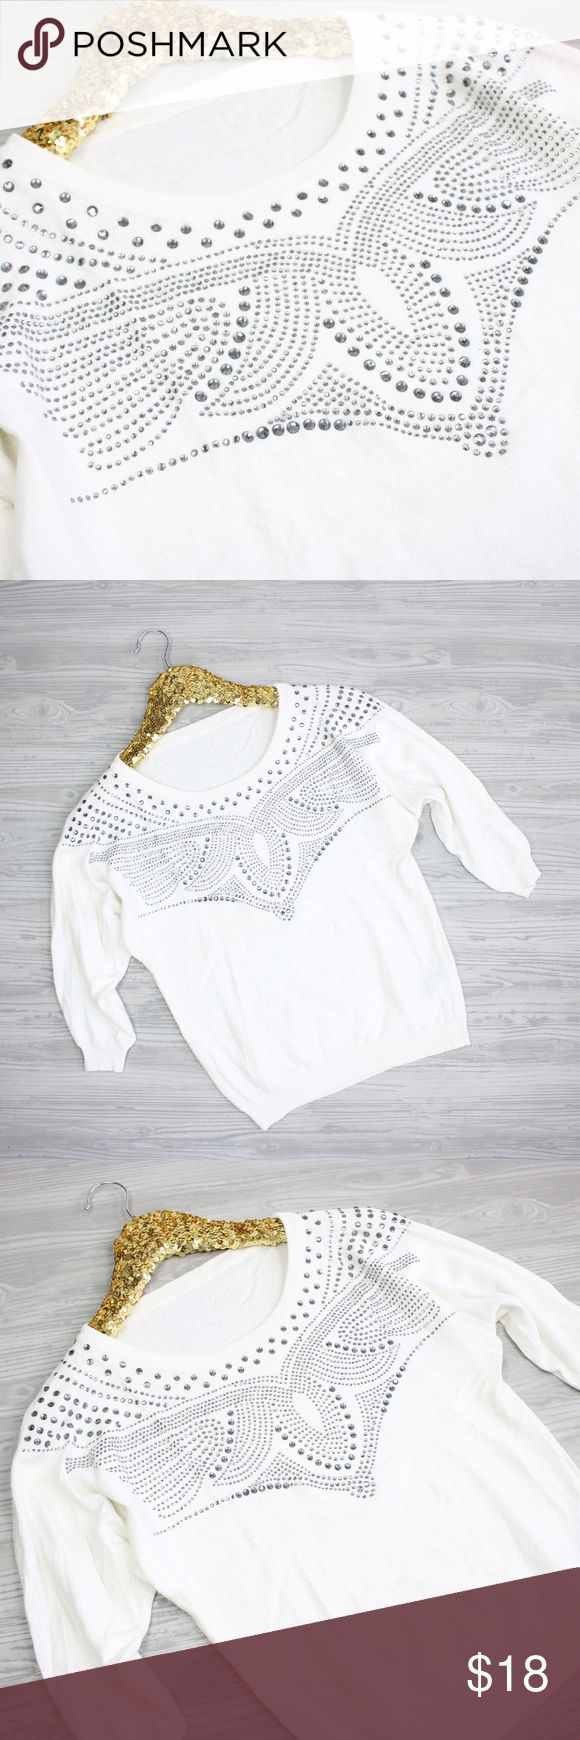 White Rhinestones Embellished Light Sweater - Size: Small - 40% Viscose, 30% Cotton, 20% Wool, 5% Alpaca, 5% Cashmere - Excellent Condition. - No trades, thank you! - Pet and Smoke-Free Home  - Same or Next day Shipping - All items are from my own closet.  MEASUREMENTS: Bust: 33 inches Length: 21.5 inches Sleeve Length: 12 inches Akiabara Sweaters Crew & Scoop Necks